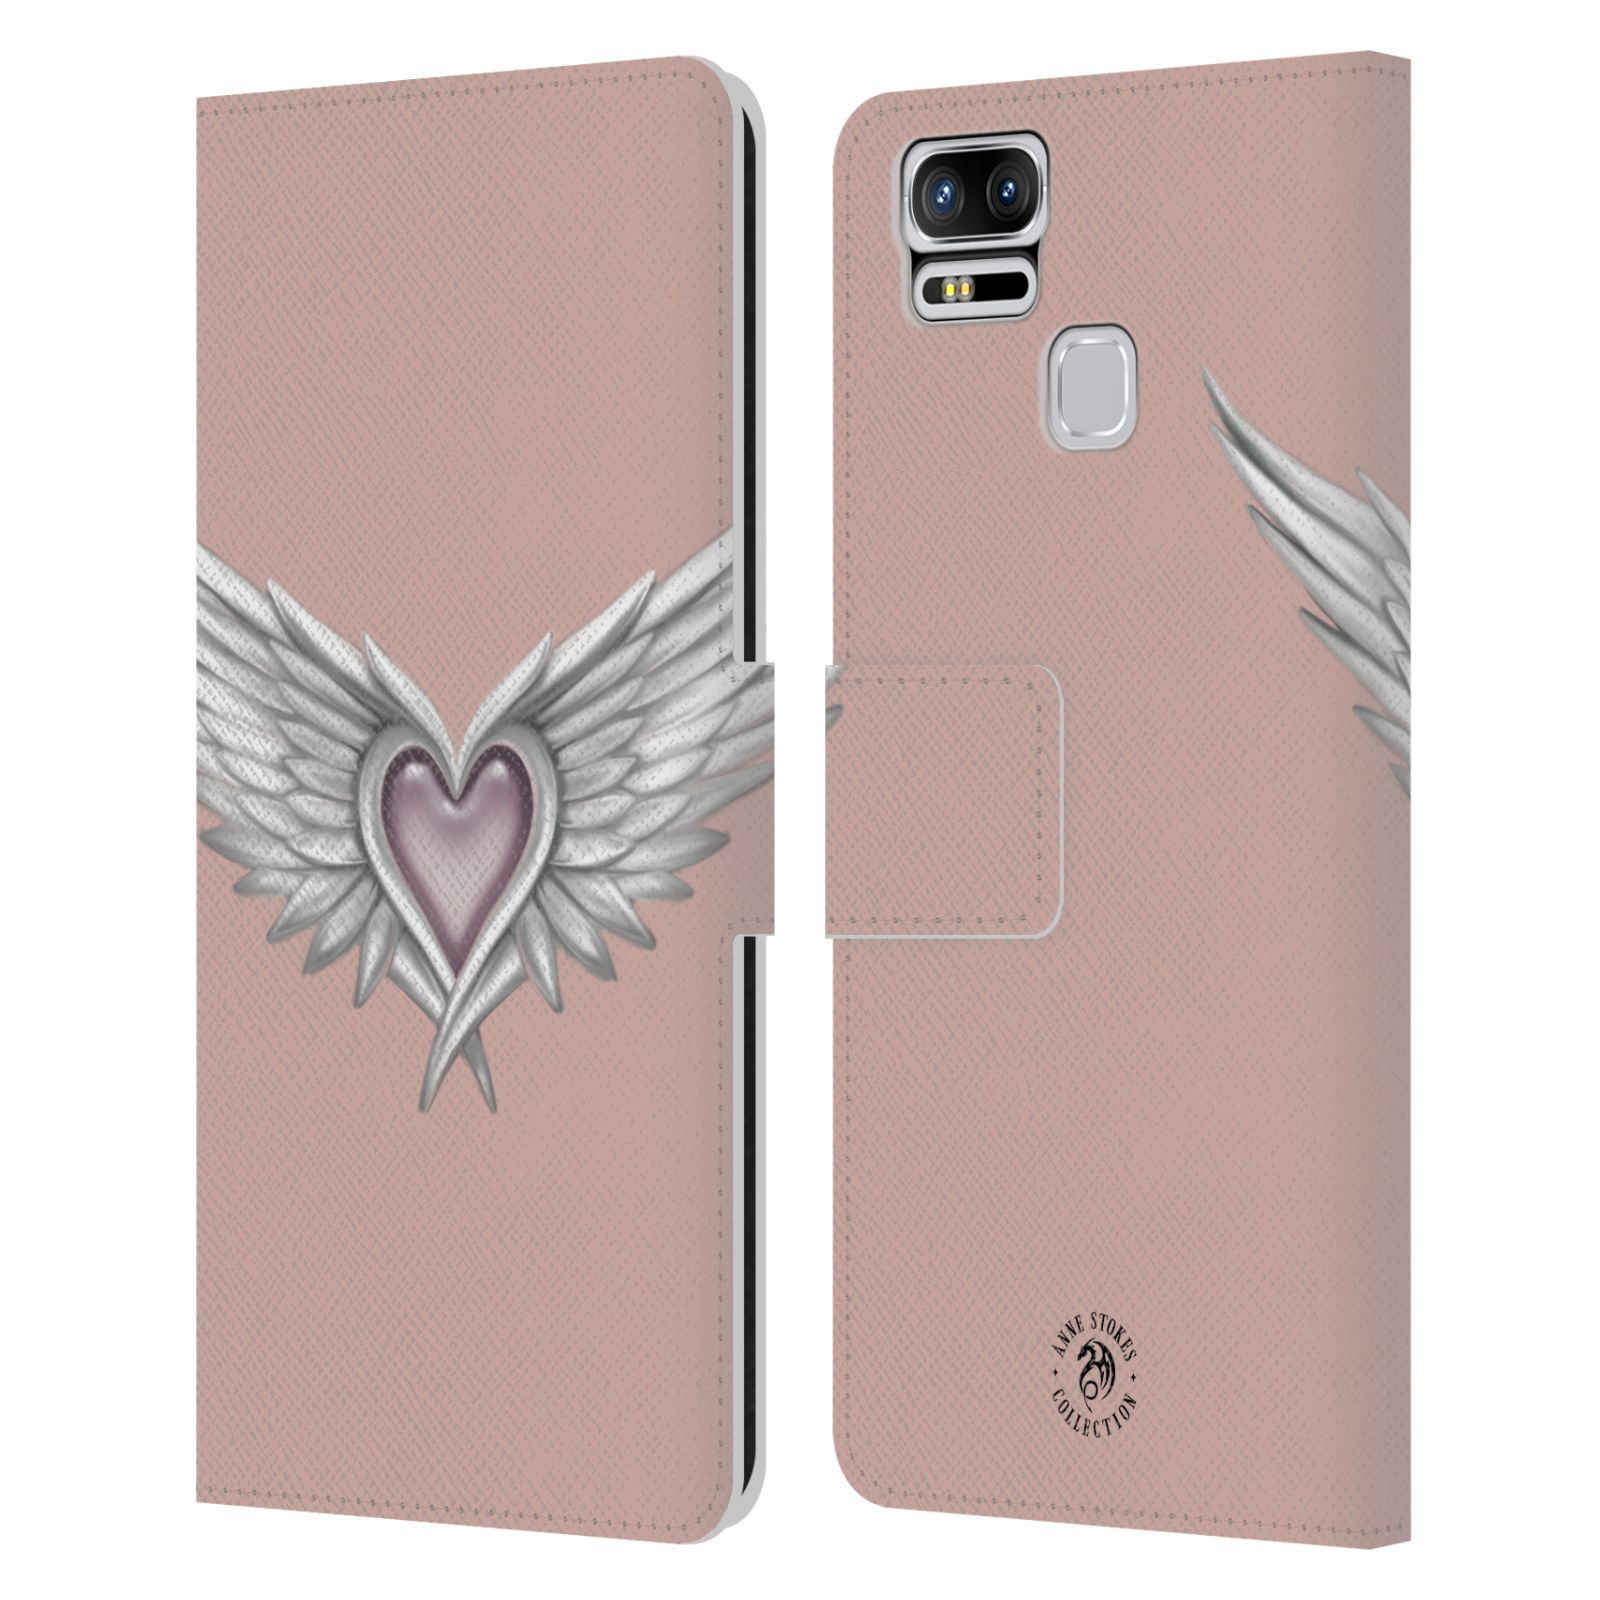 ANNE-STOKES-MERMAID-AND-ANGELS-LEATHER-BOOK-WALLET-CASE-FOR-ASUS-ZENFONE-PHONES